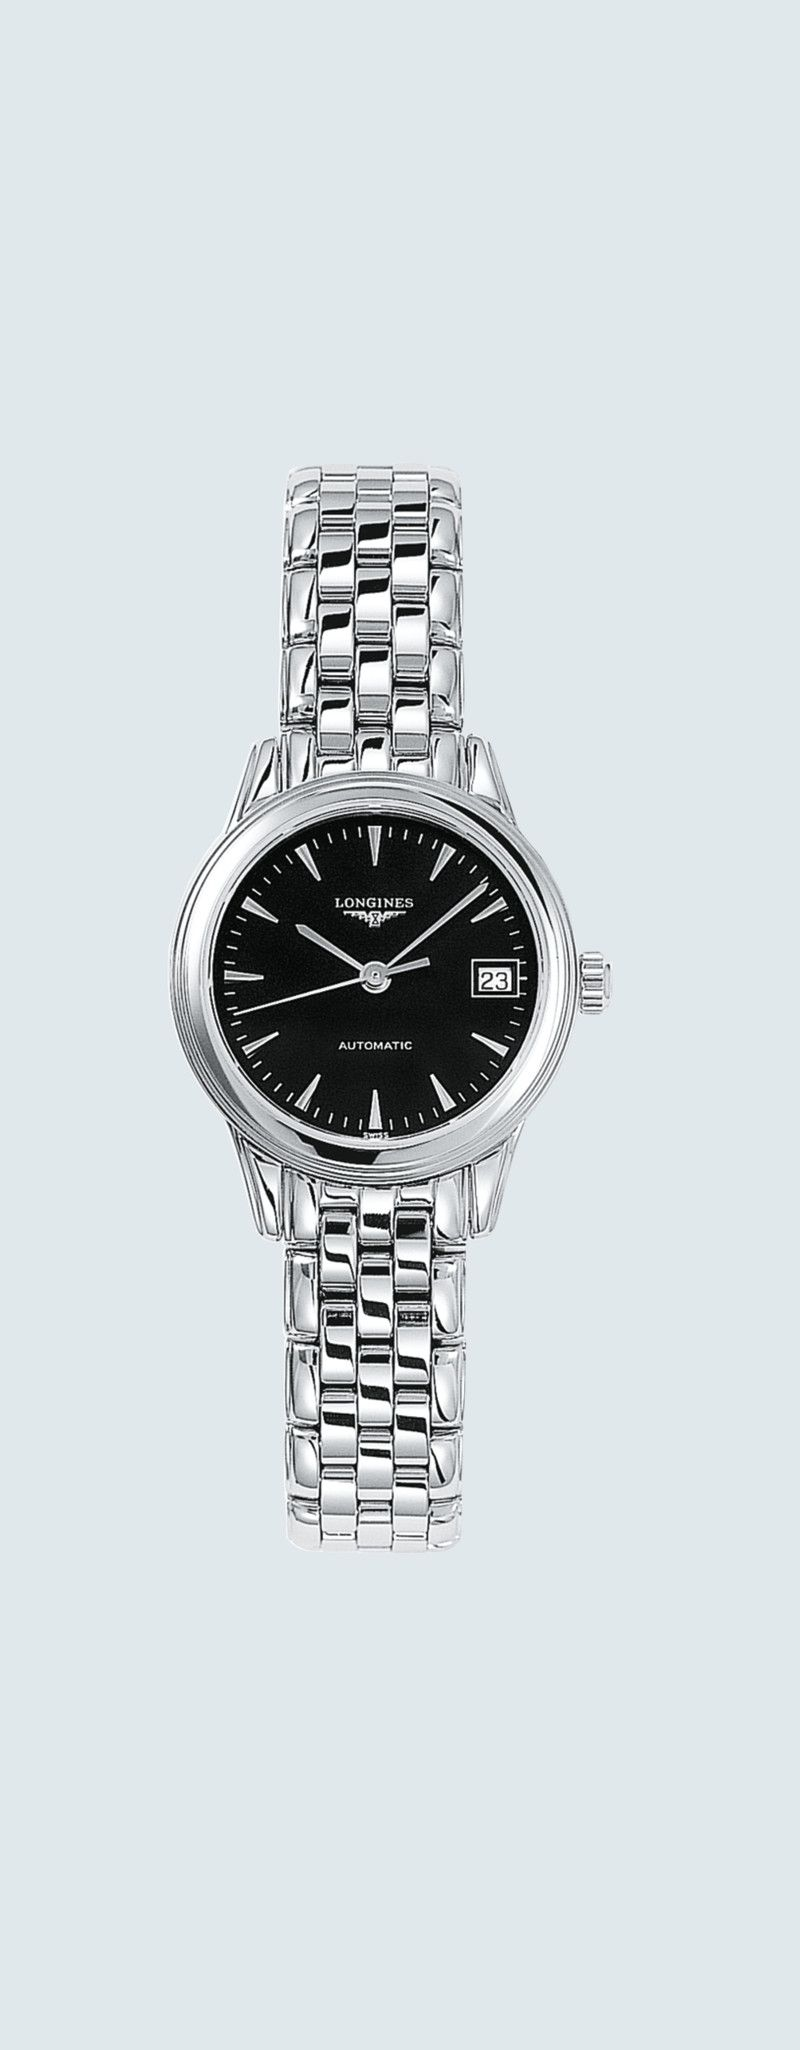 26.00 mm Stainless steel case with Black matt dial and Stainless steel strap - case zoom view